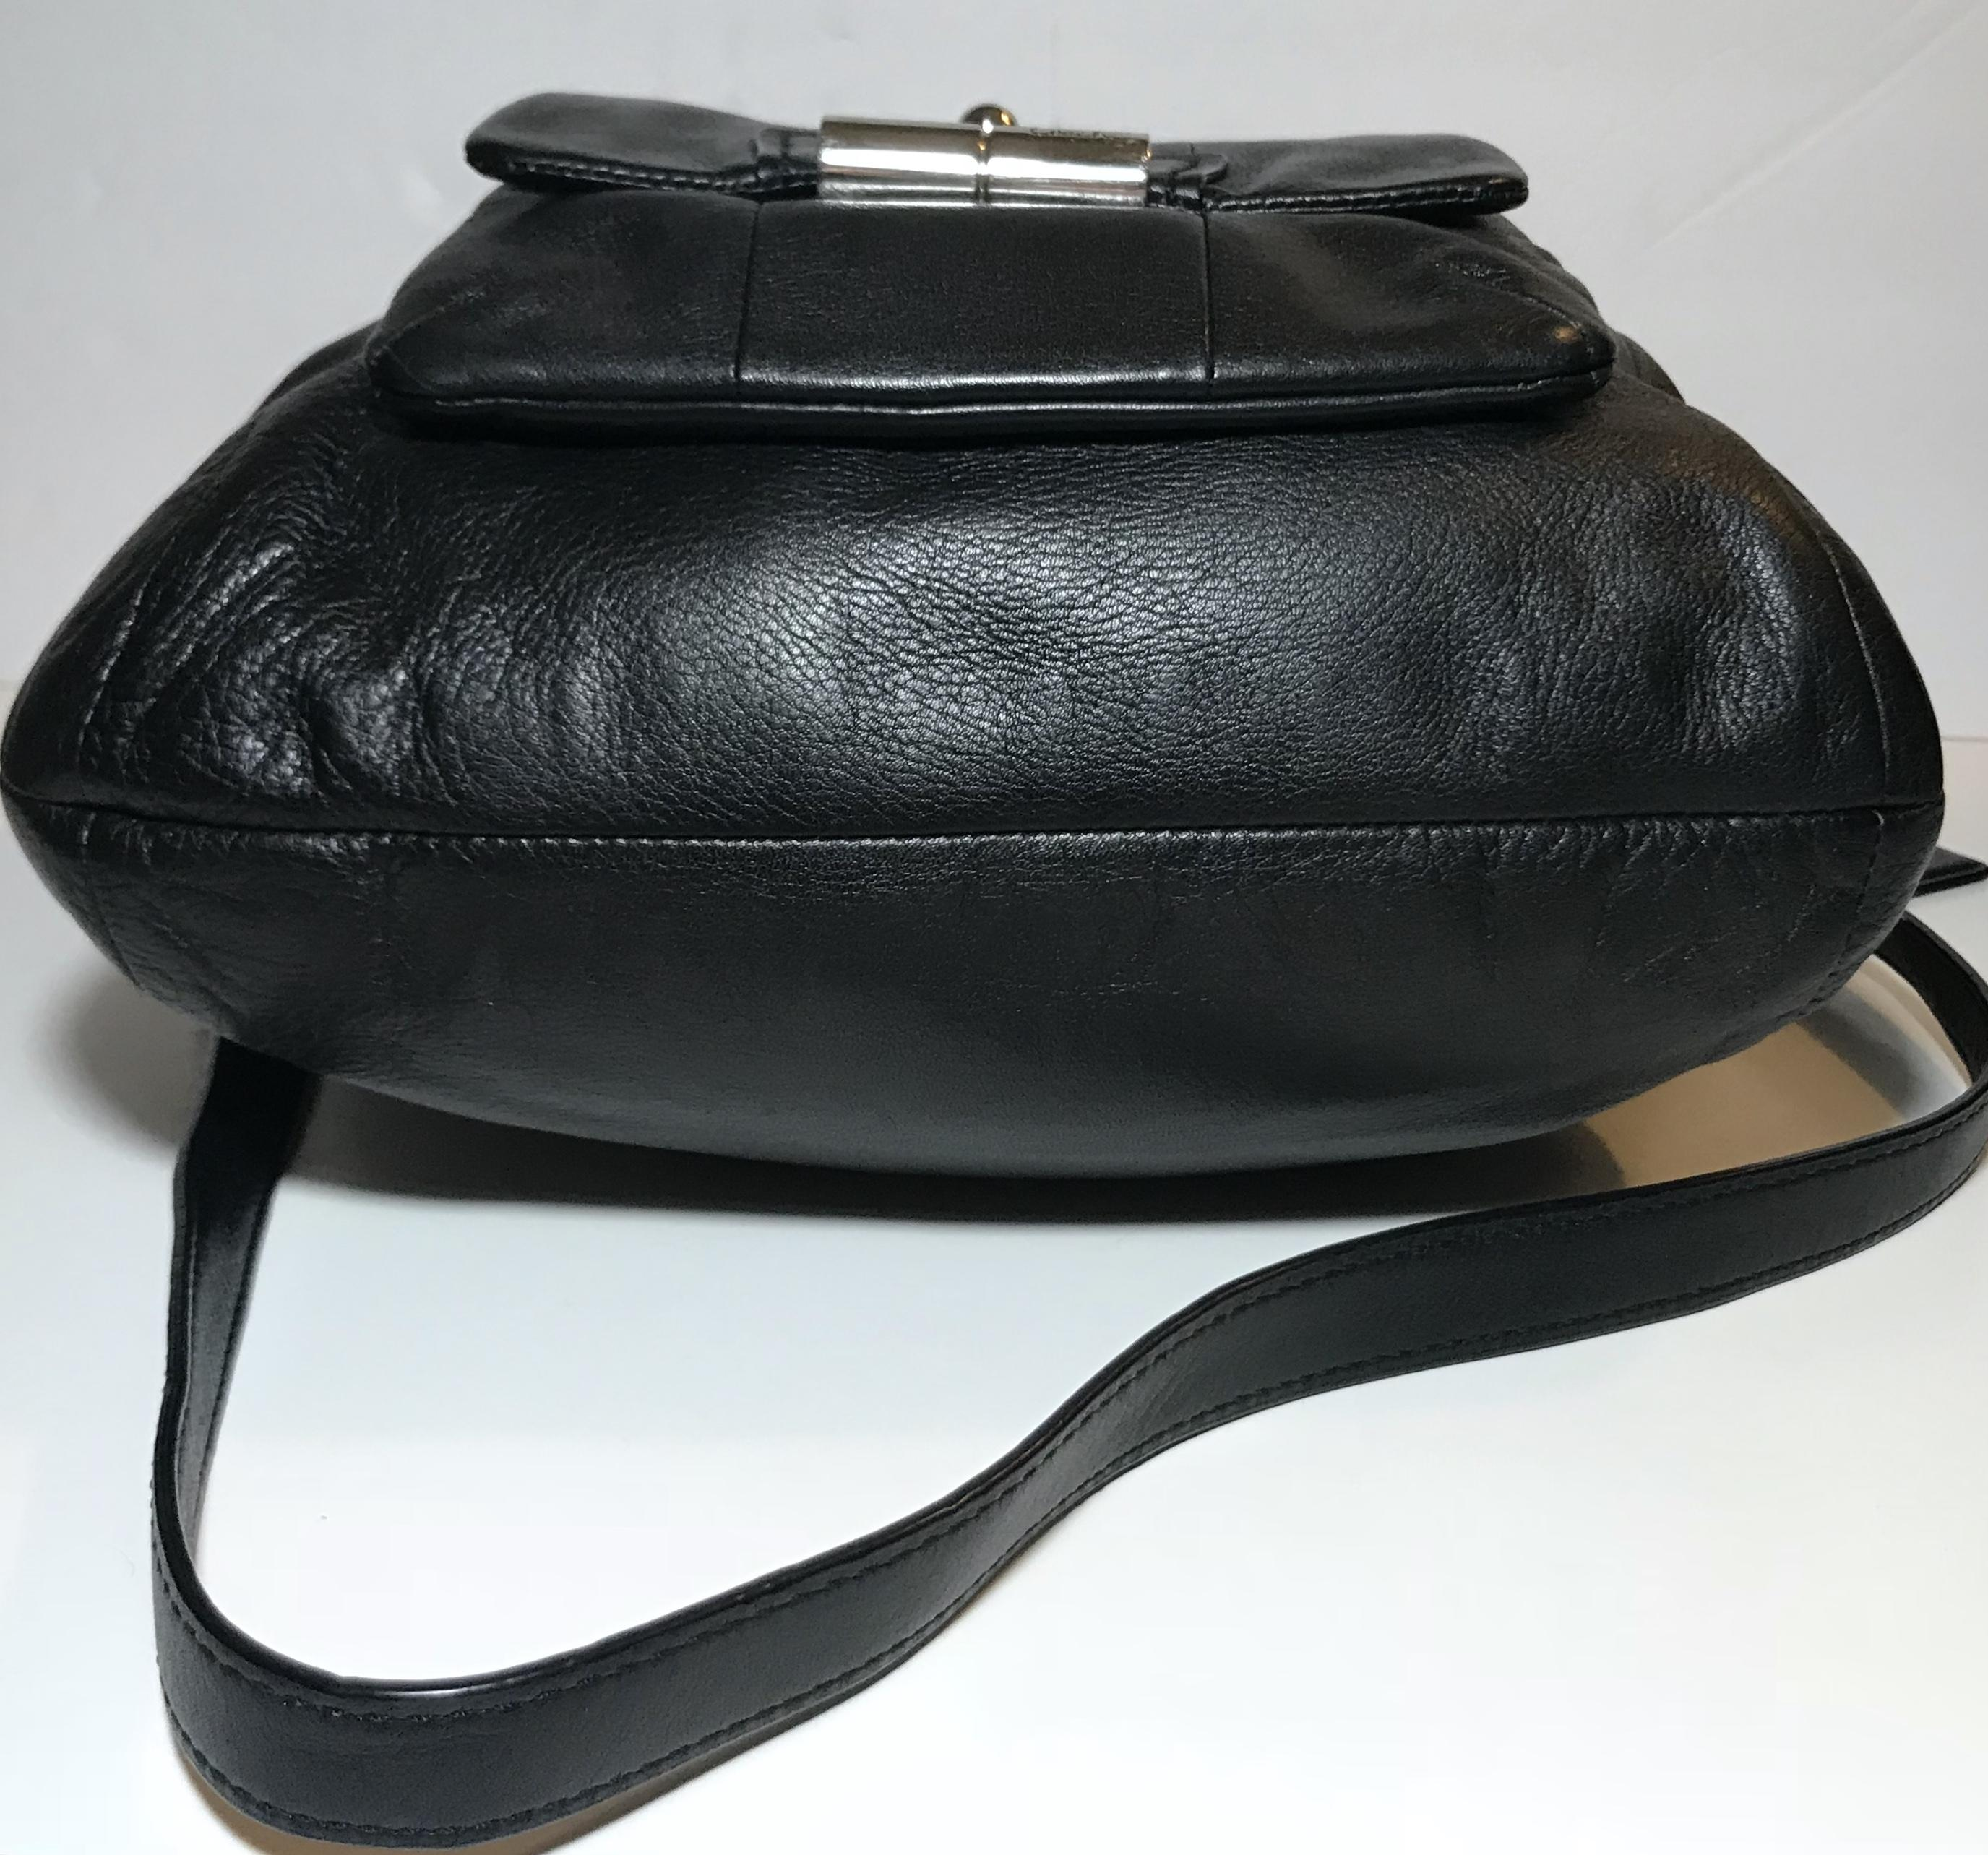 05b5a9dc5d1 ... new zealand coach kristin crossbody black leather hobo bag tradesy  593ef 962f1